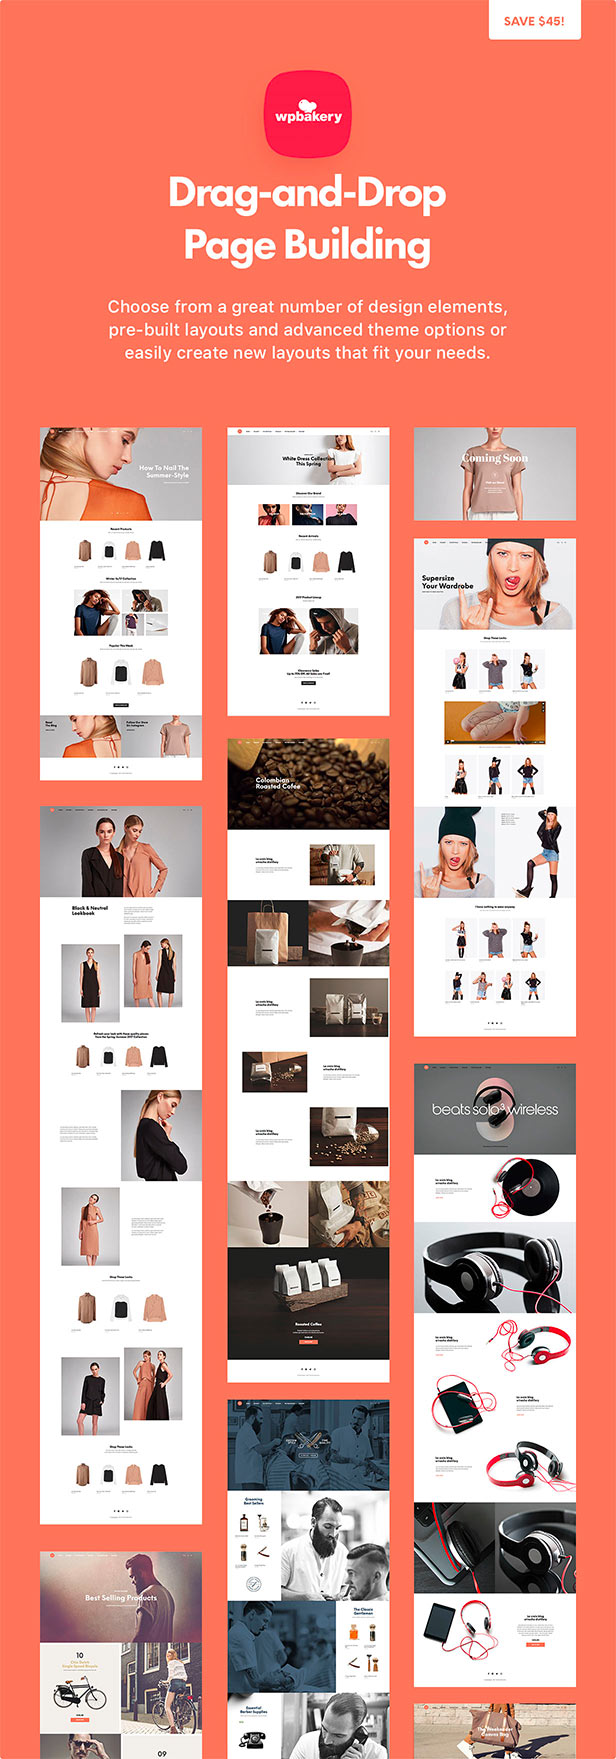 Shopkeeper - eCommerce WP Theme for WooCommerce - 15